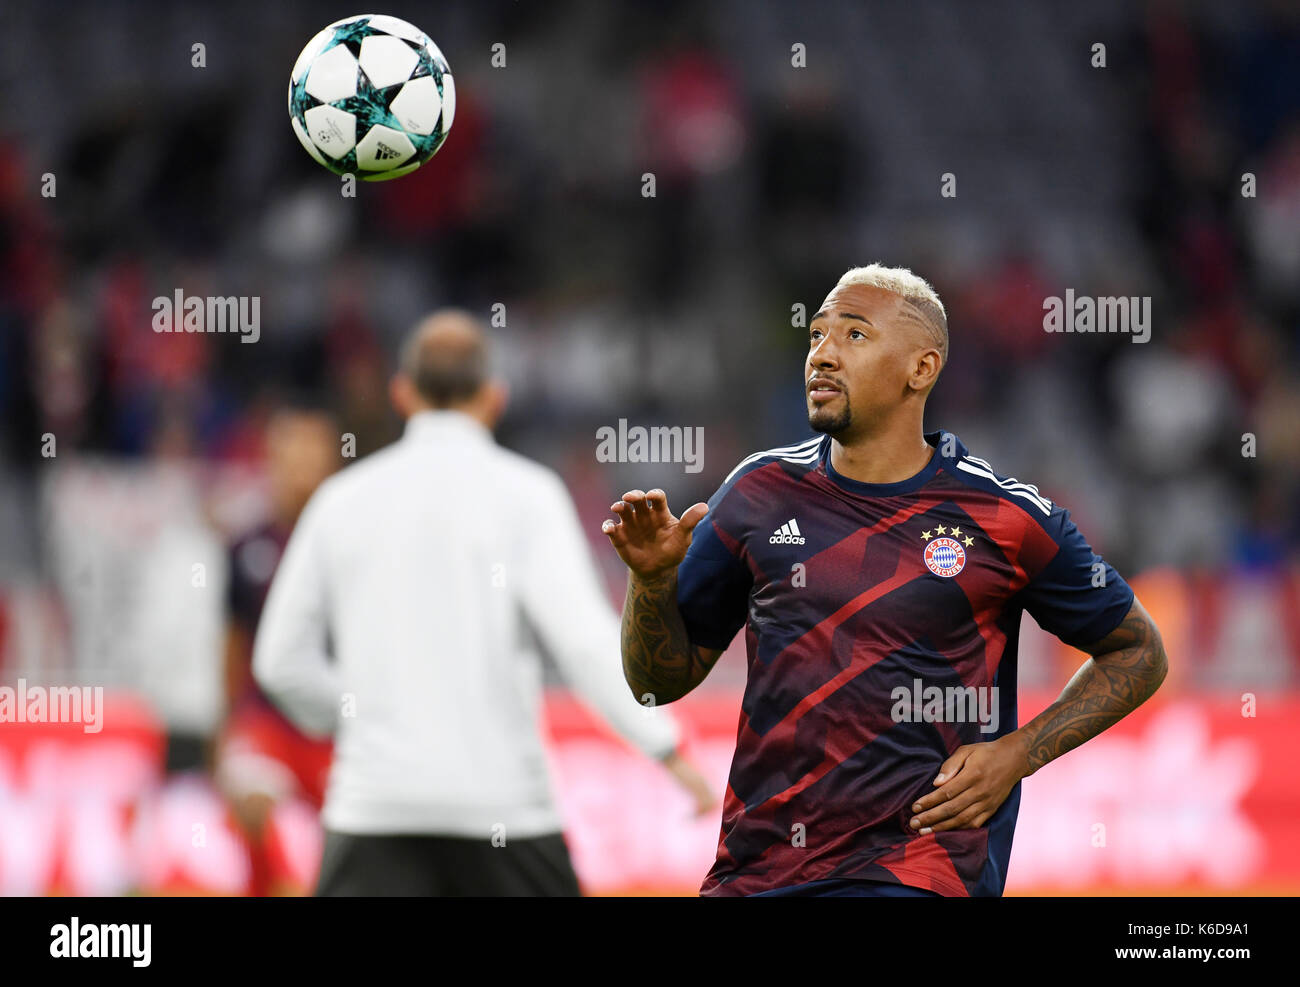 Munich's Jerome Boateng warms up before the Champions League Group B match between Bayern Munich's and RSC Anderlecht at the Allianz Arena in Munich, Germany, 12 September 2017. Photo: Andreas Gebert/dpa - Stock Image